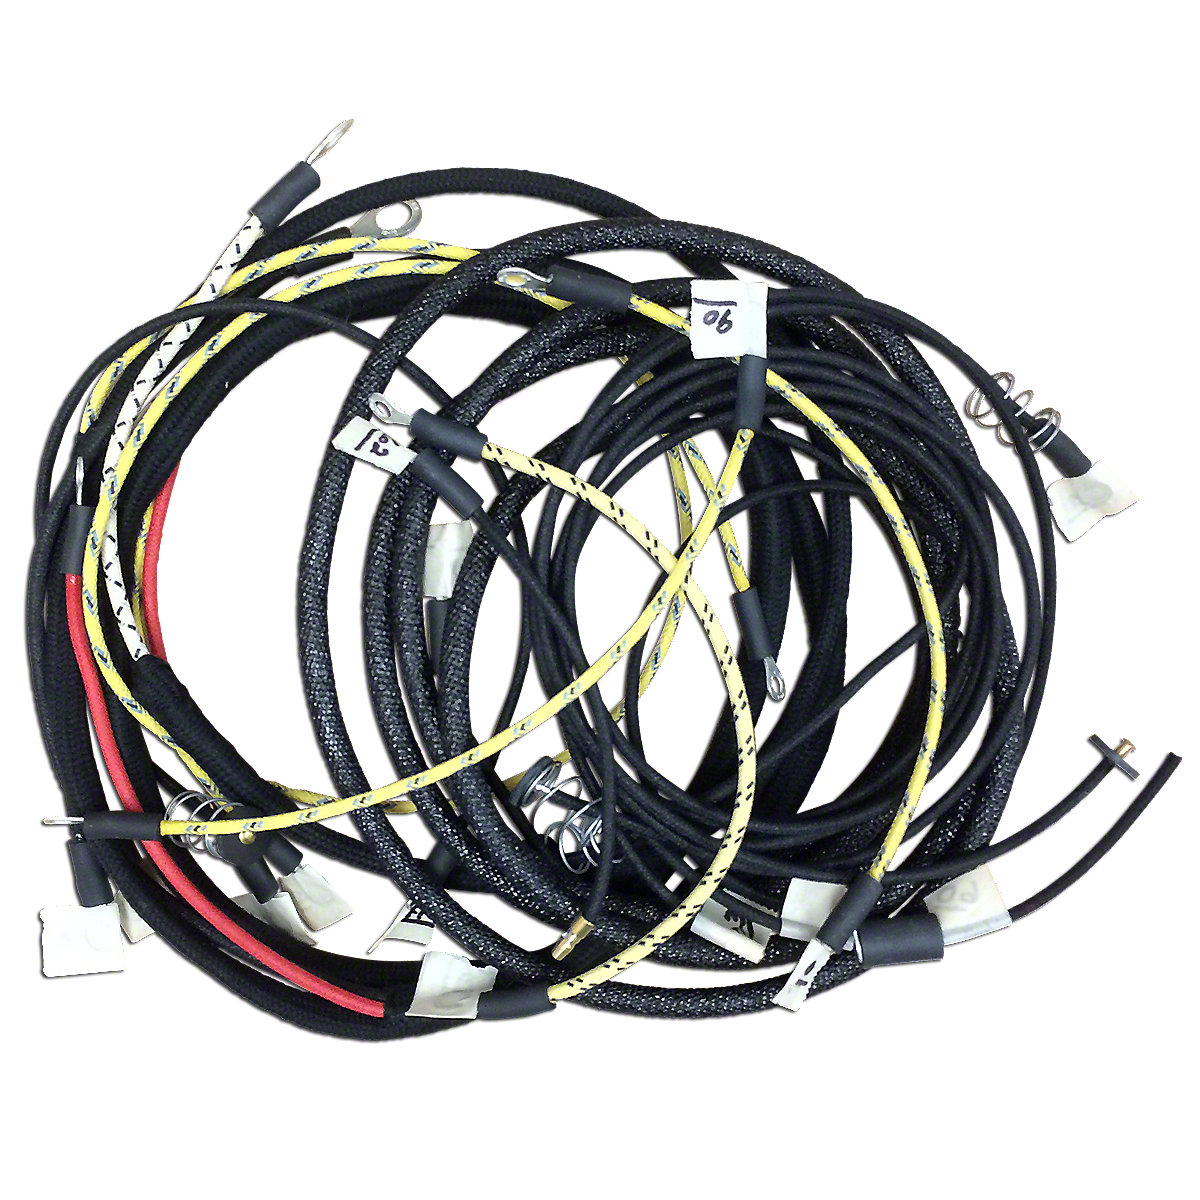 oliver 60 wire diagram oliver automotive wiring diagrams description acs2925 lg oliver wire diagram